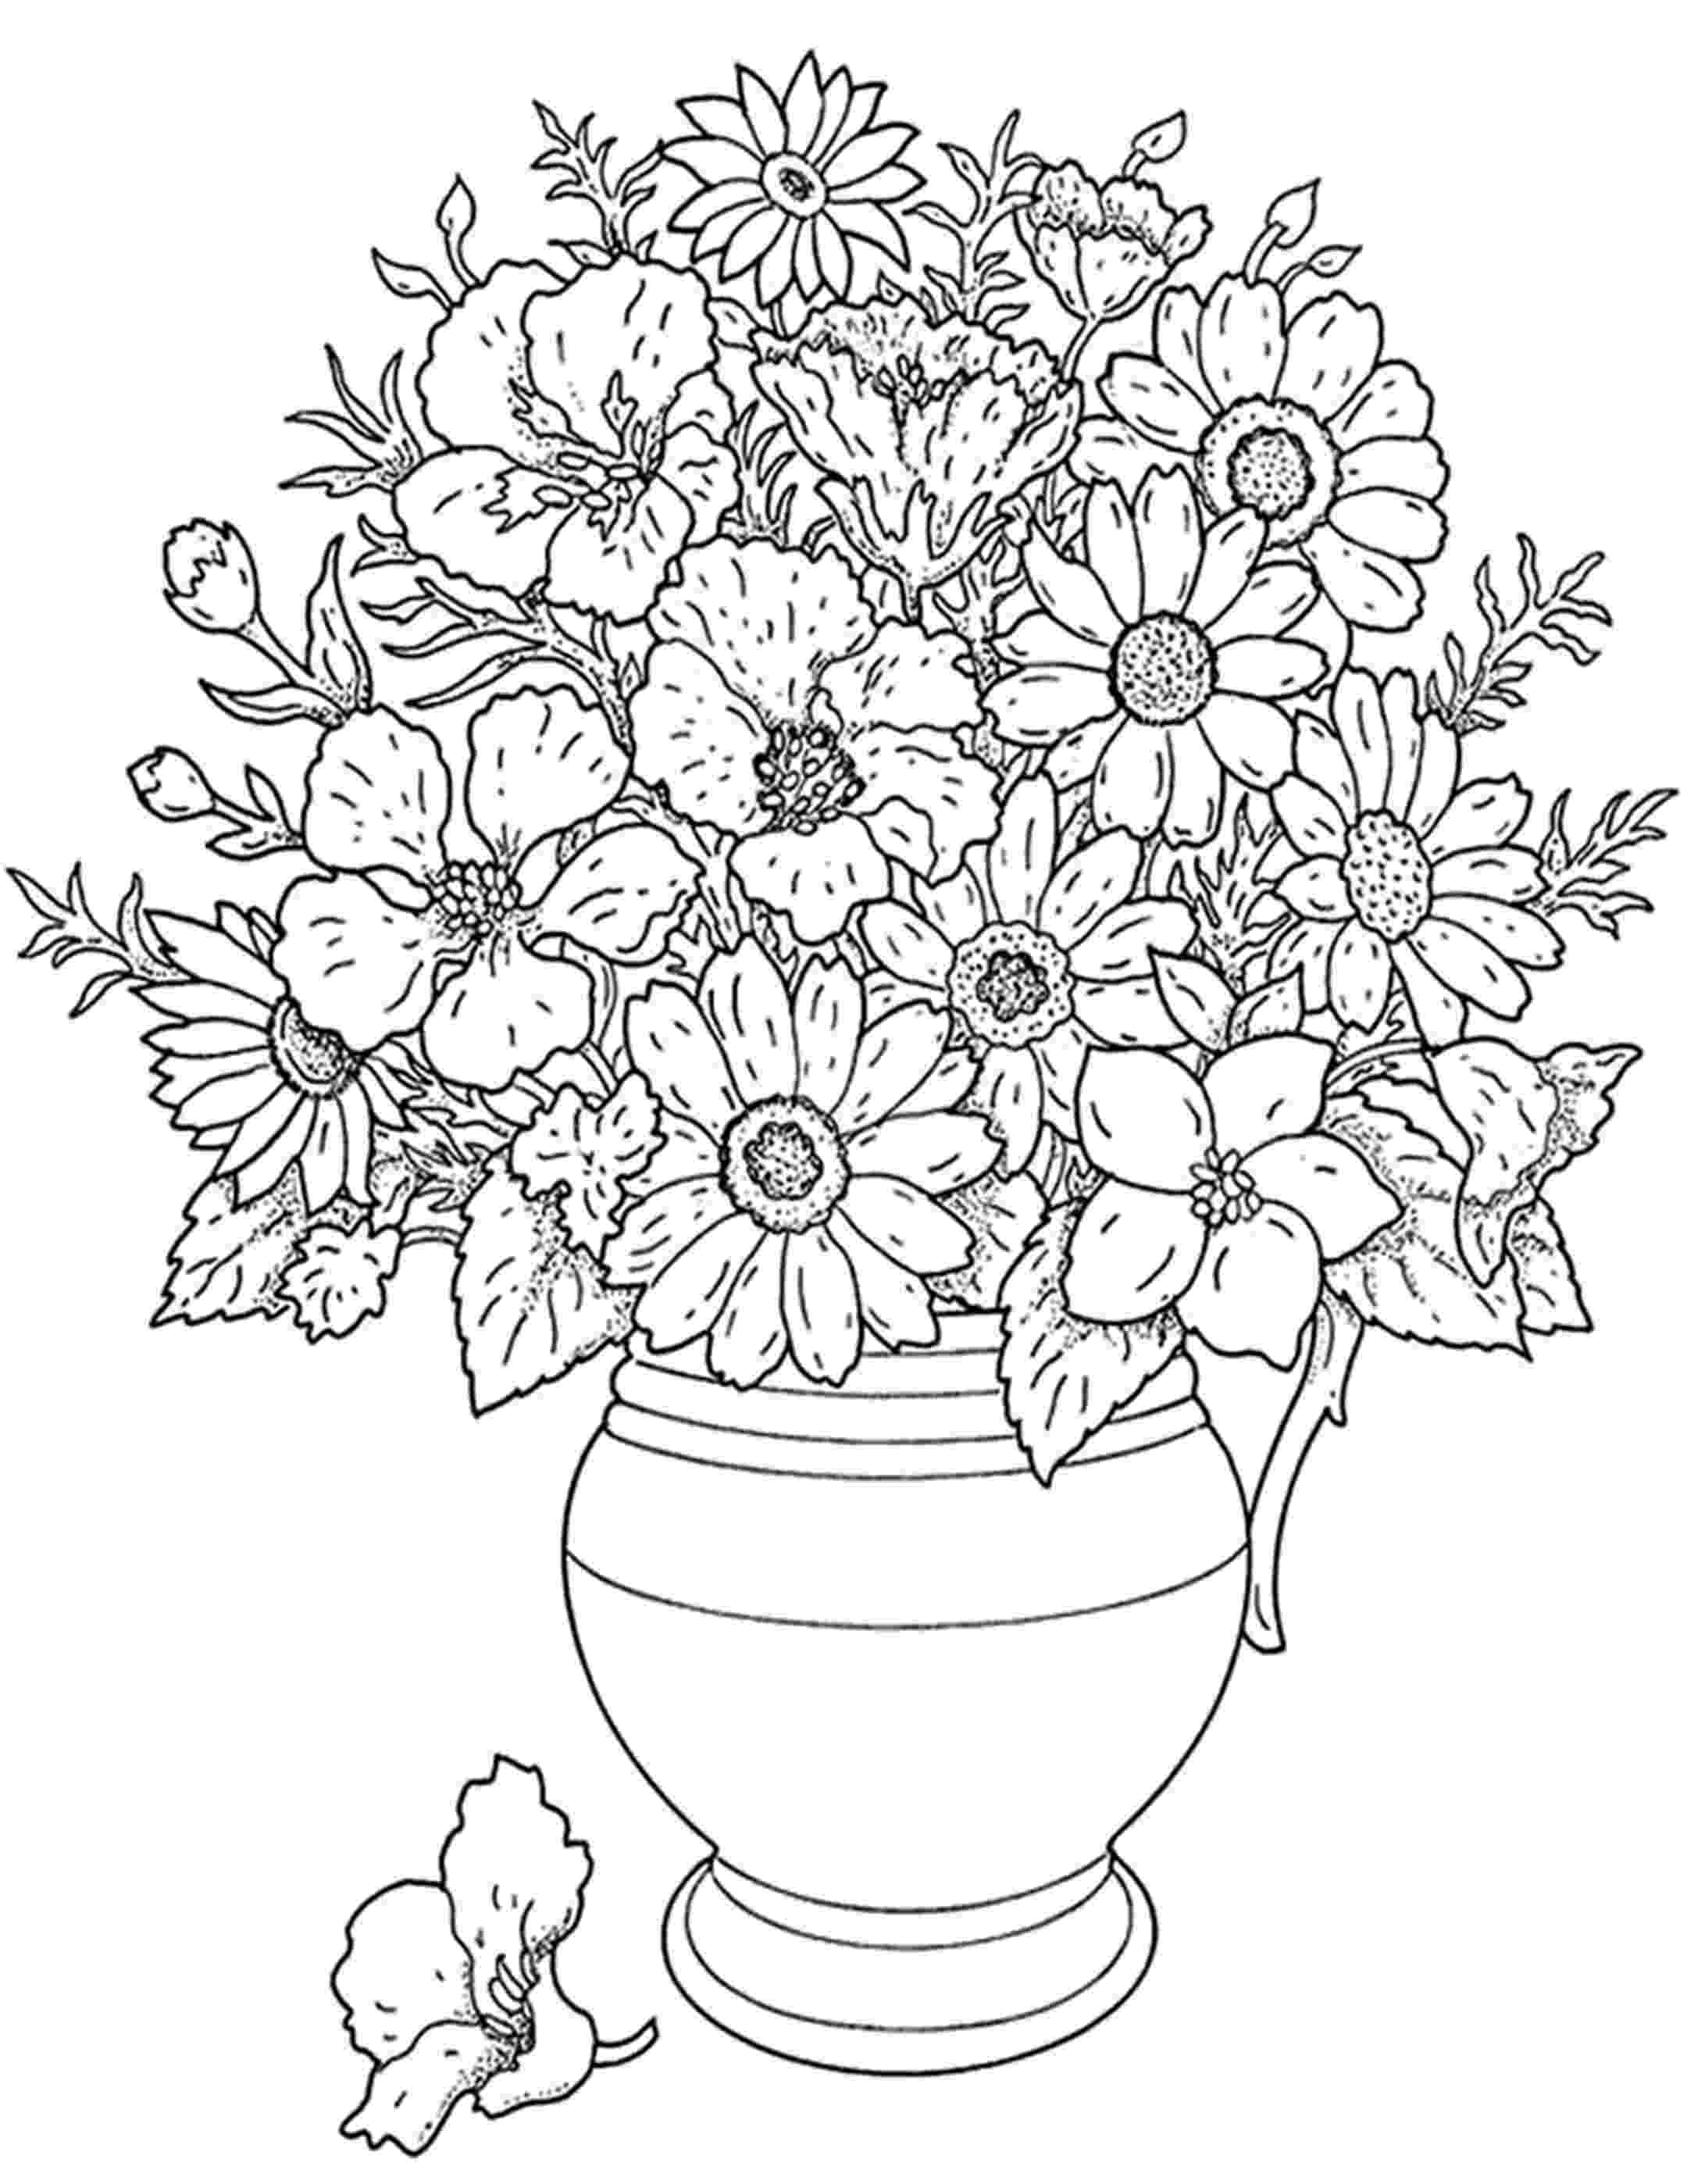 printable flower coloring pages free printable flower coloring pages for kids best printable coloring flower pages